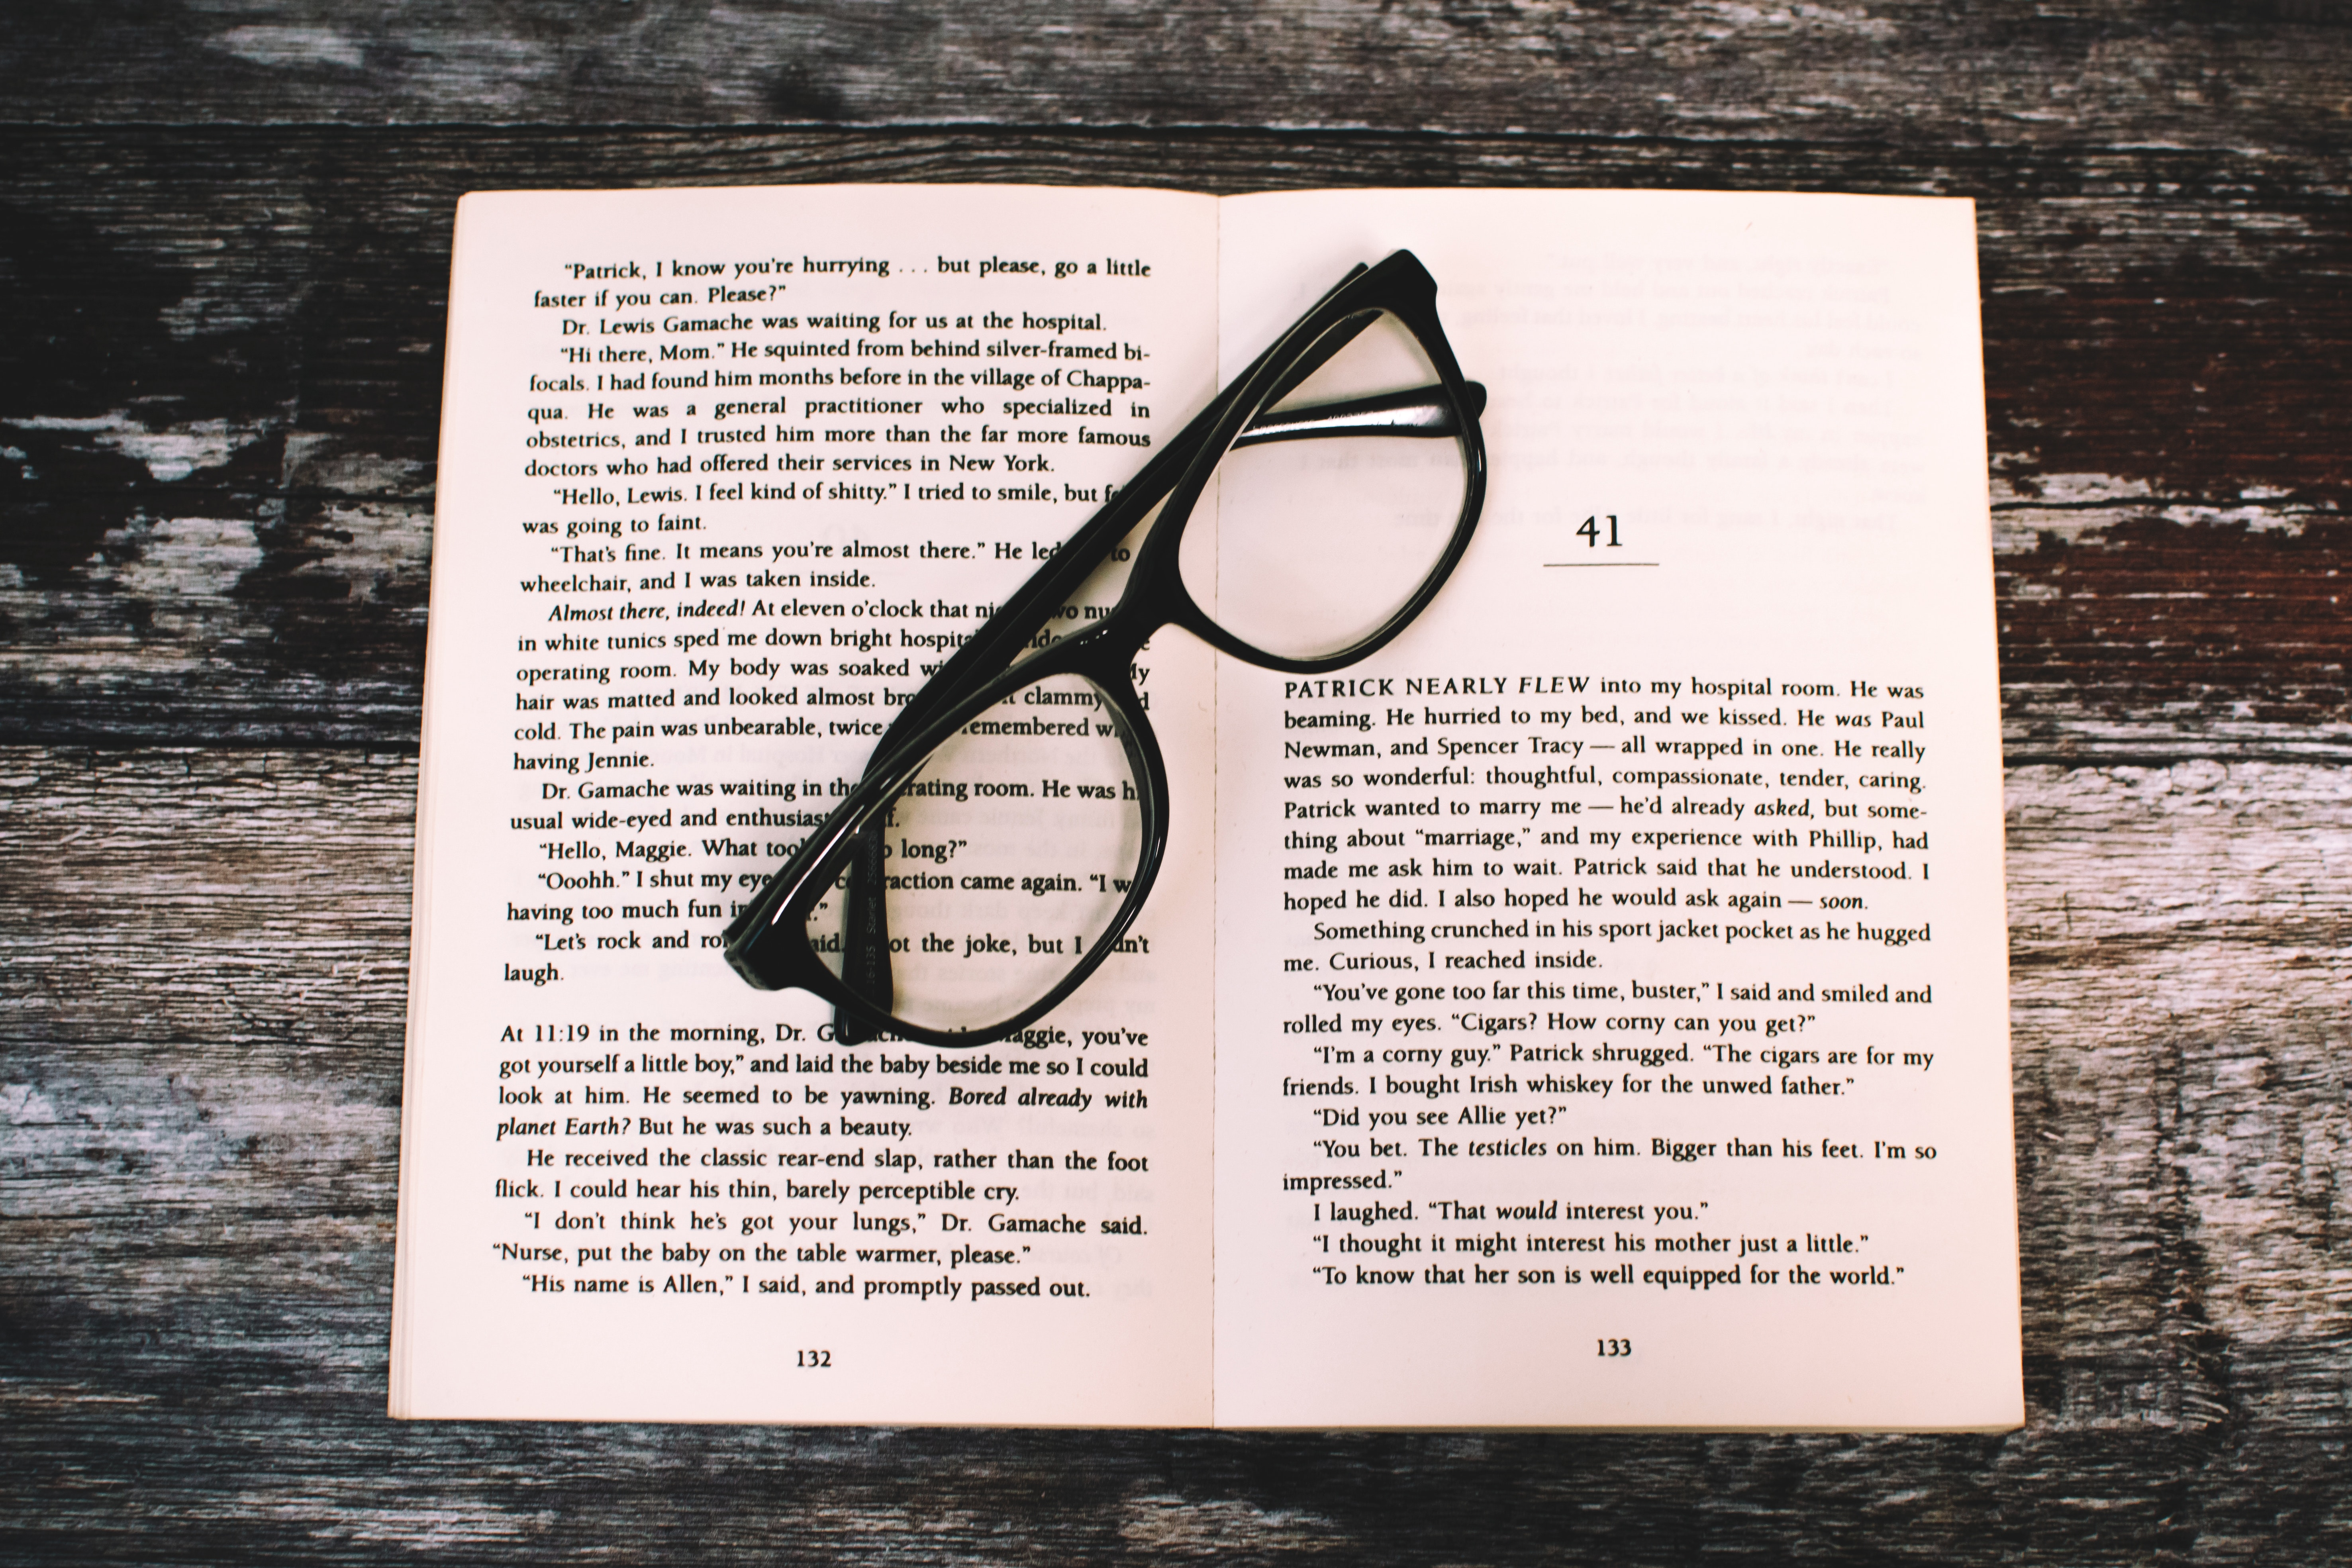 book-eyeglasses-eyewear-831430